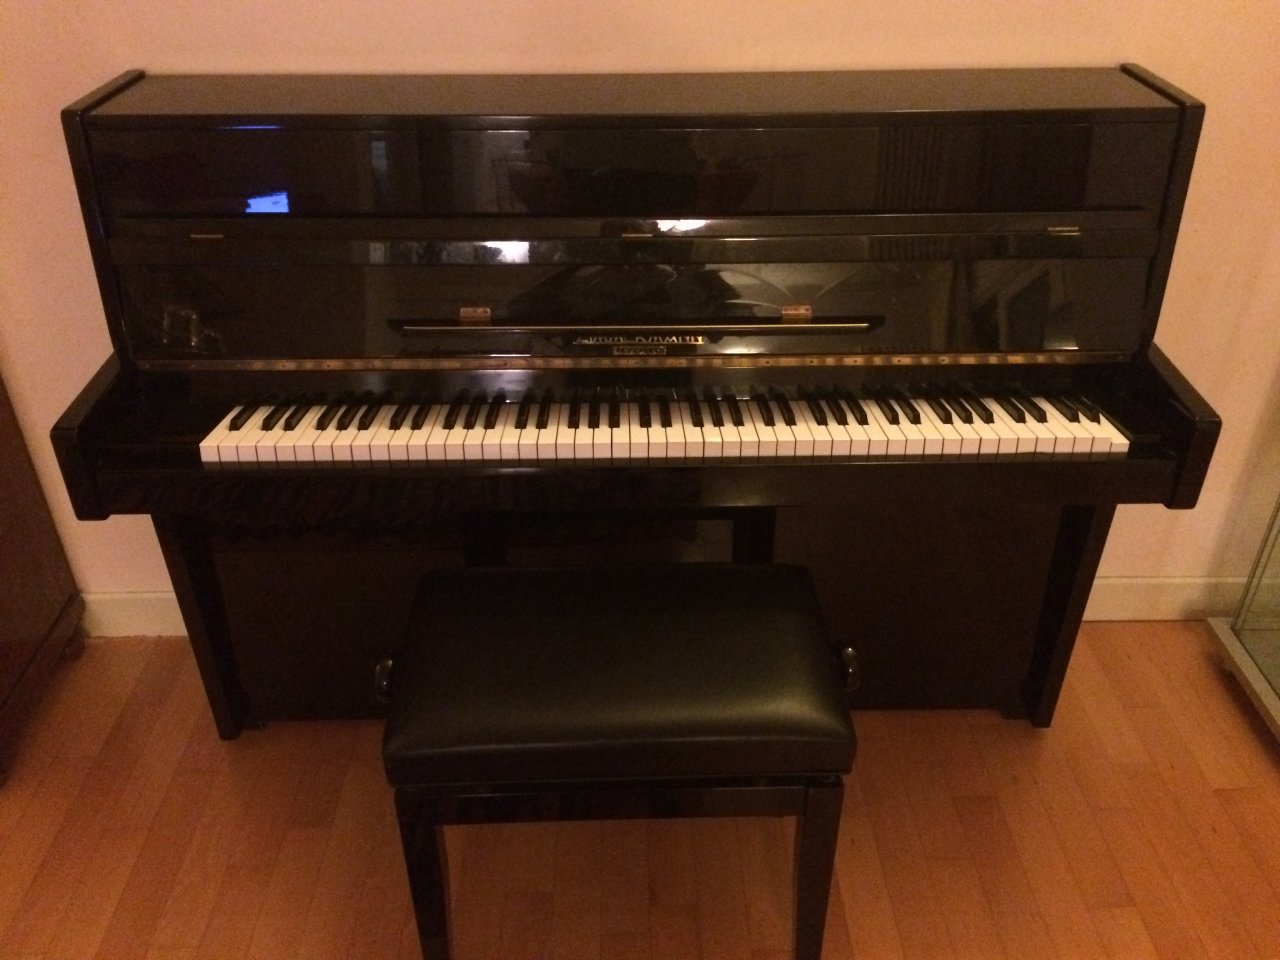 I Have A Zimmermann Upright Piano Serial Number 62510 Age And